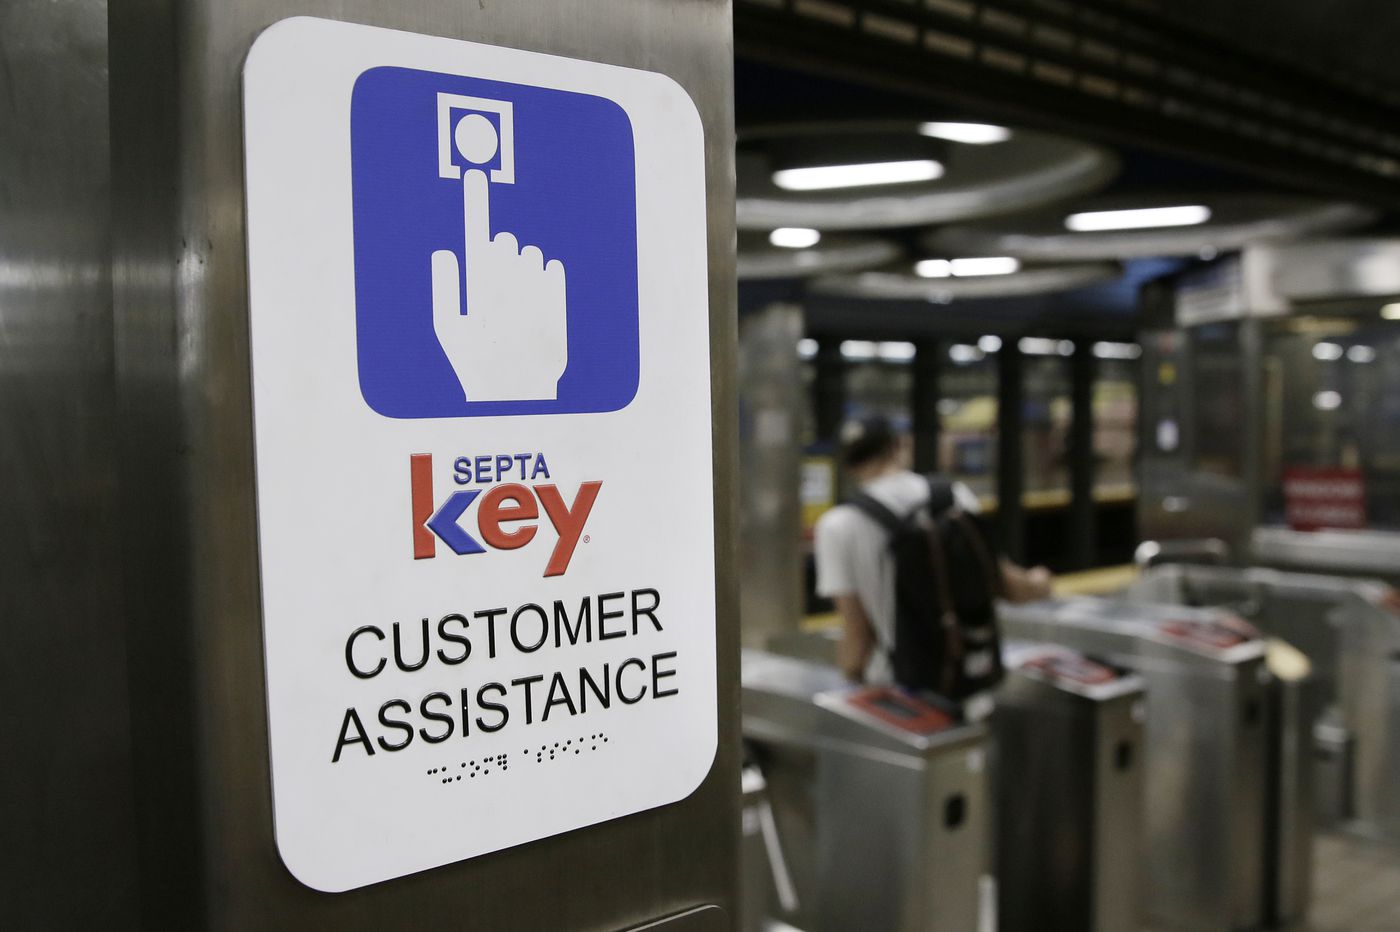 SEPTA Key card costs continue to balloon with an additional $14.4M spending increase